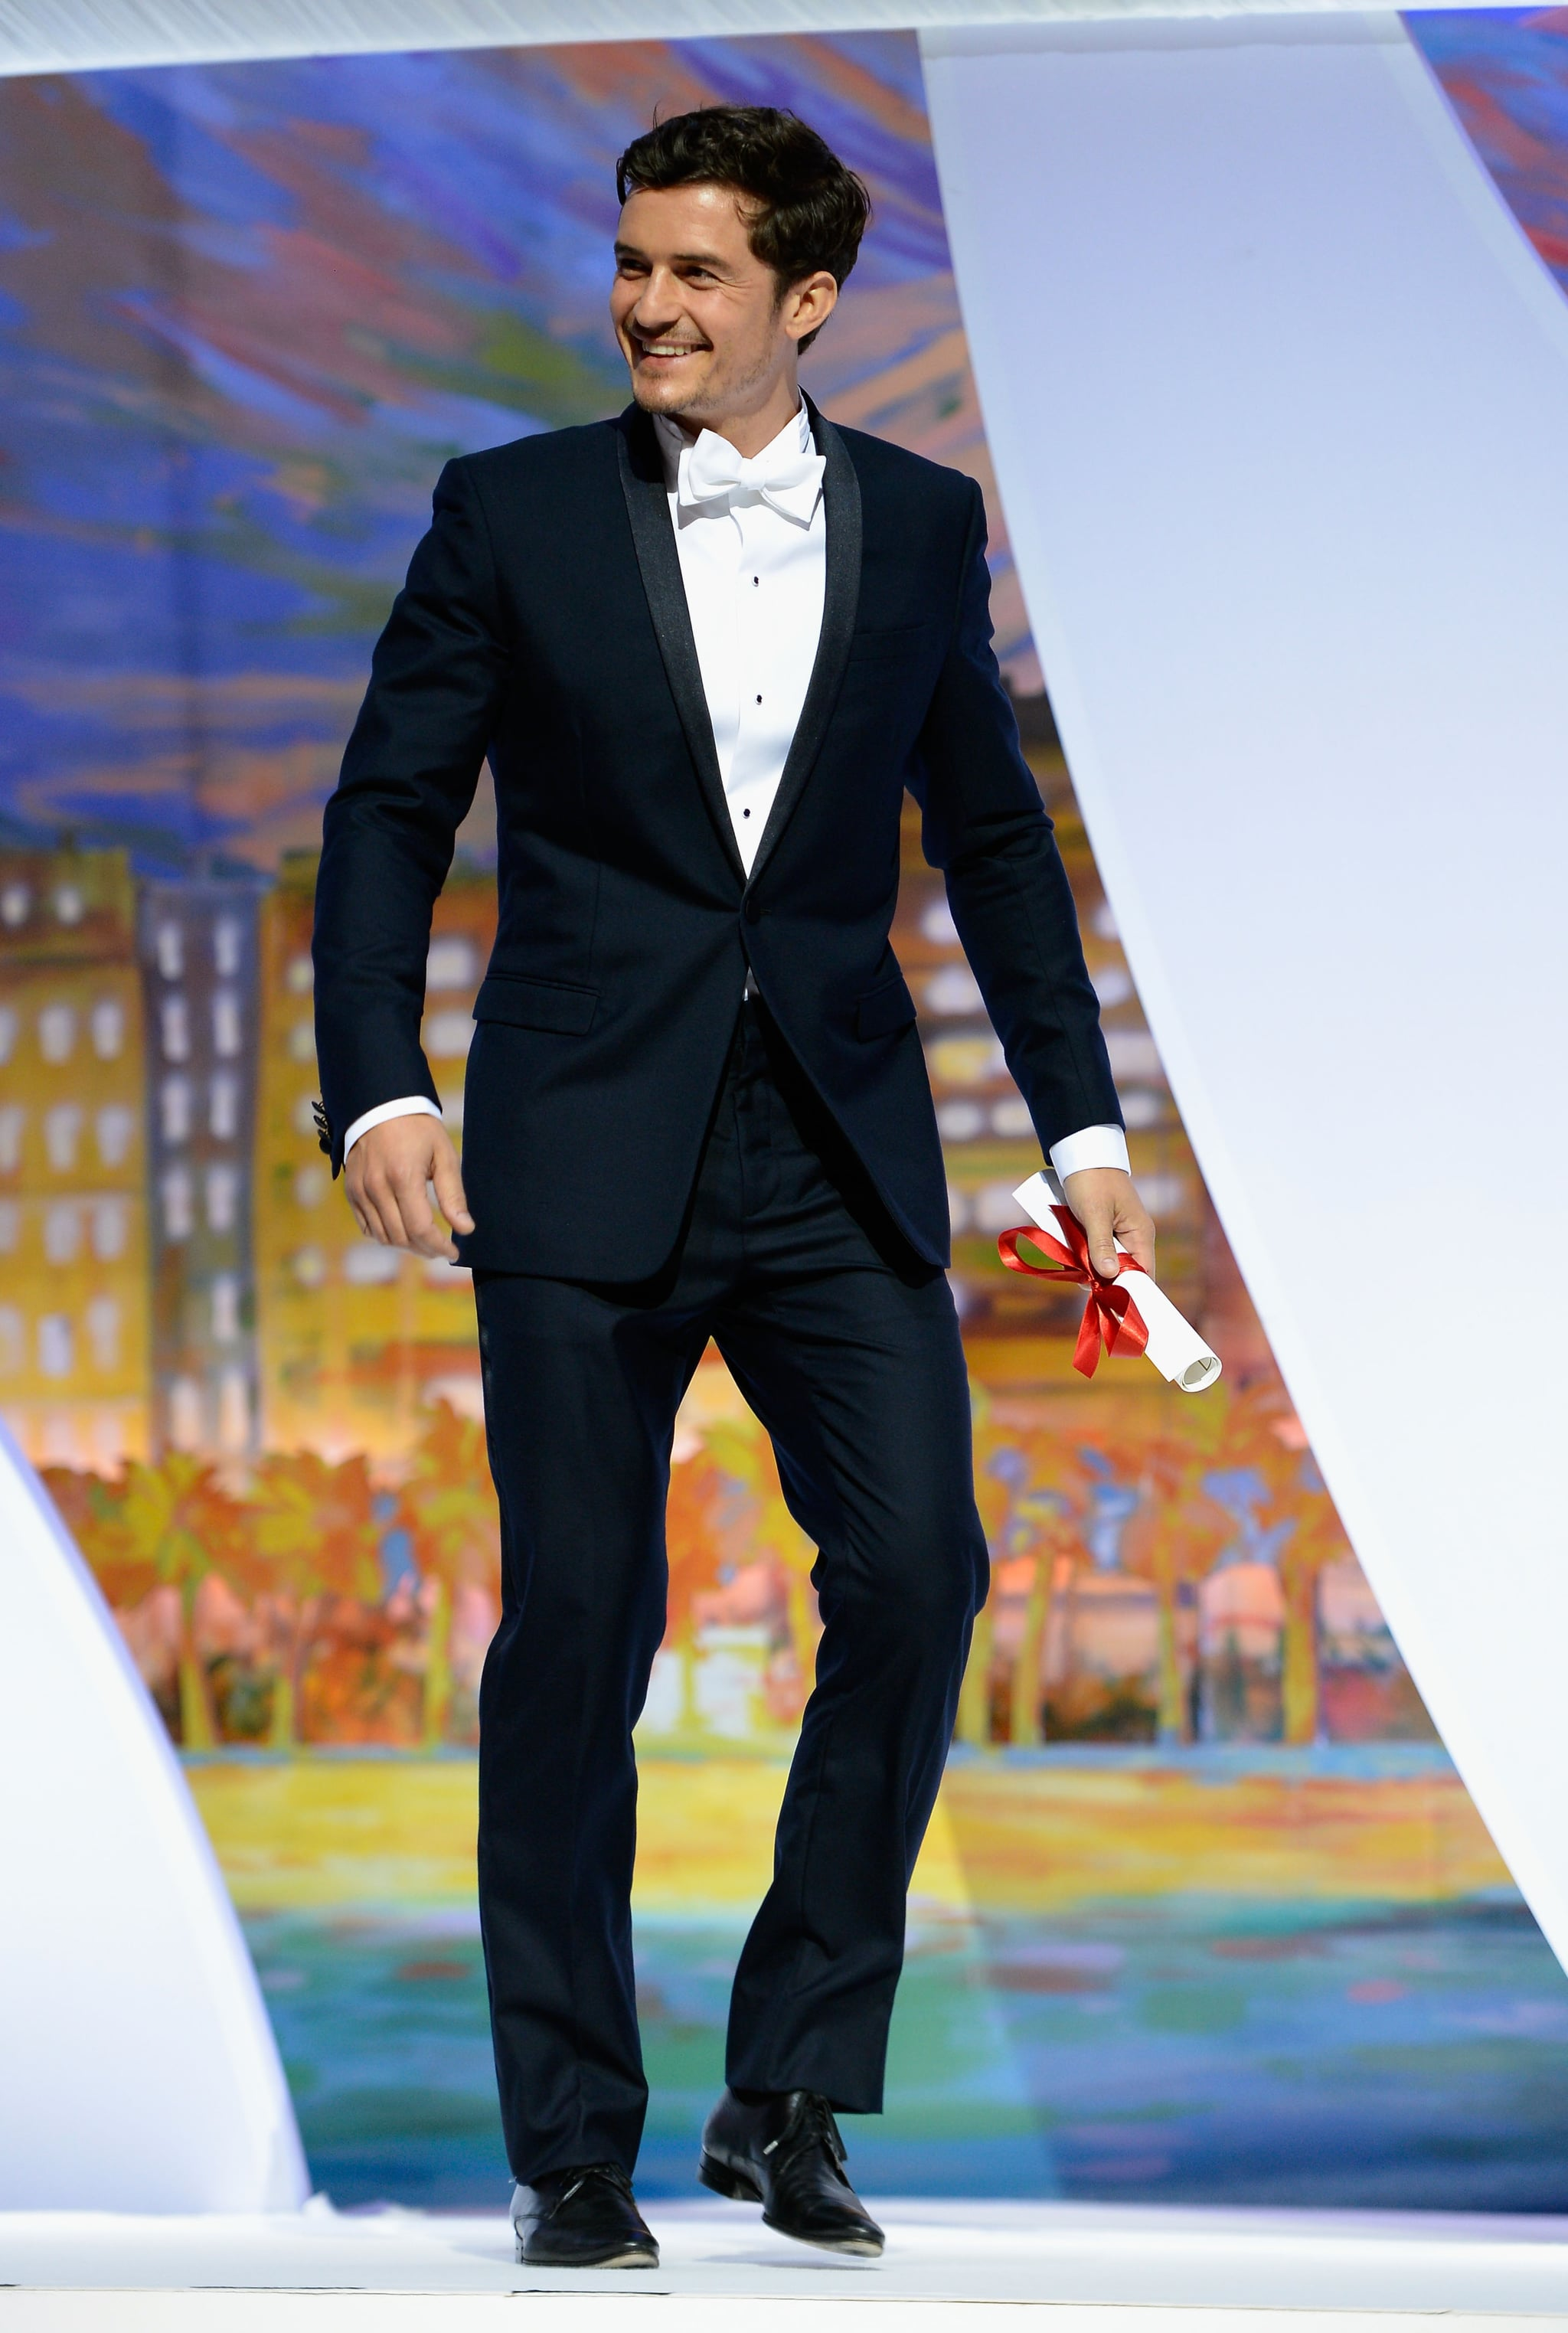 Orlando Bloom presented an award during the Cannes closing ceremony on Sunday.